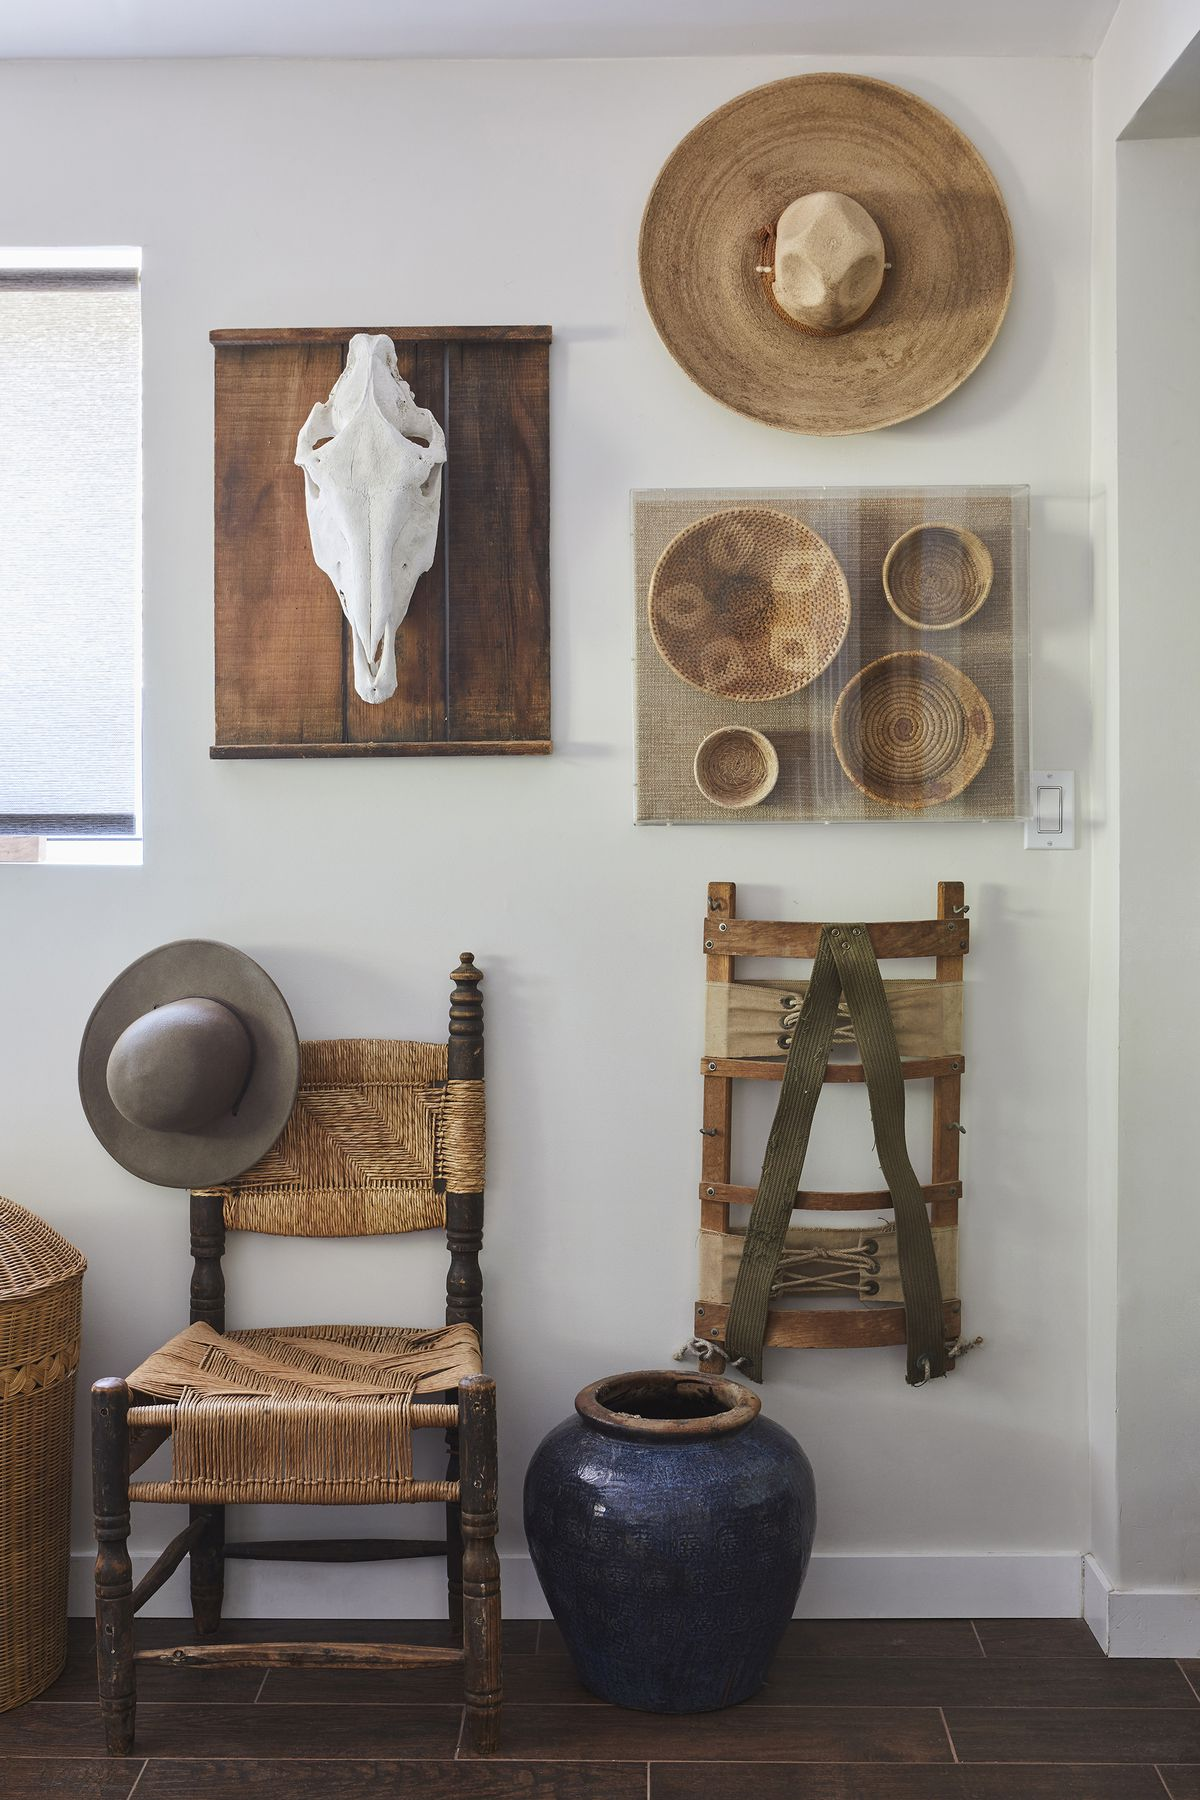 A wall has a straw hat, a white steer skull, a group of woven baskets, and a backpack rack hang on the wall over a wood-and-wicker chair.